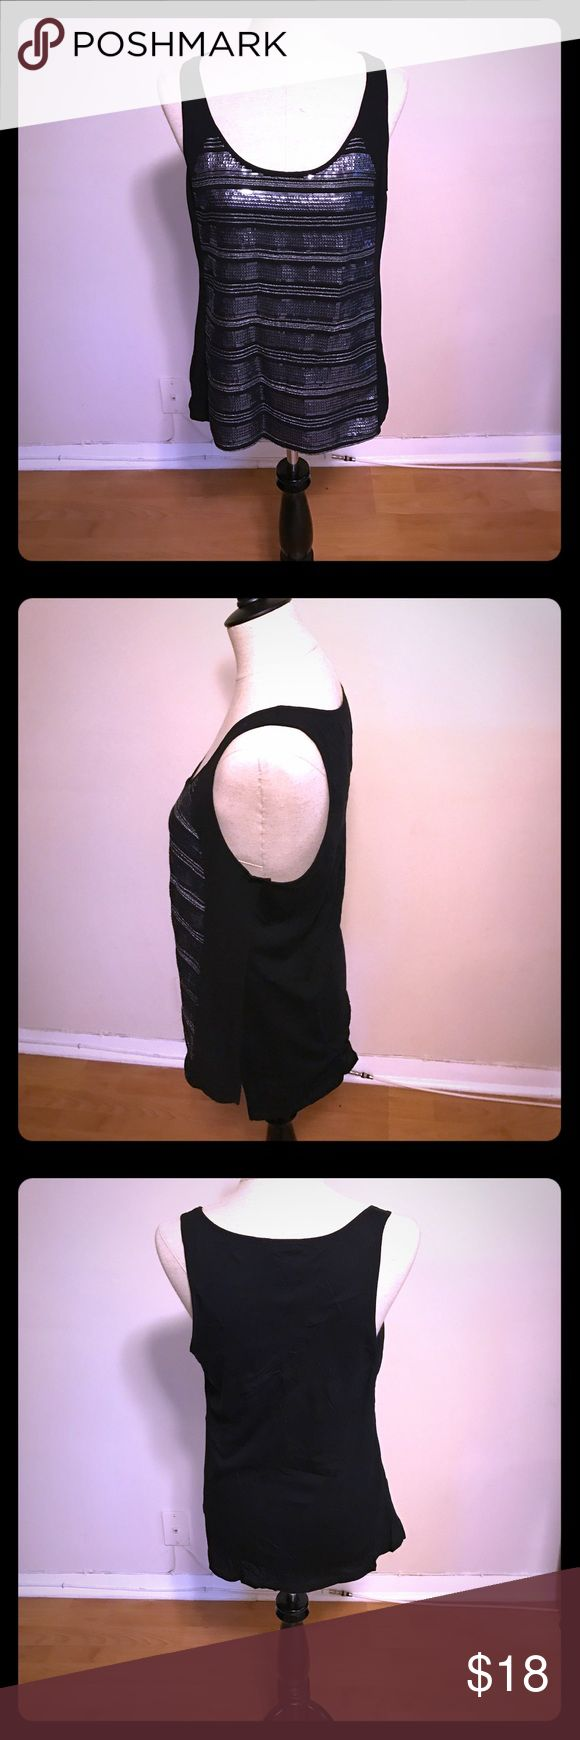 Express Sequin Tank Top! New with Tags Sliver and Gold Sequin Tank Top! Express New with Tags Express Tops Tank Tops